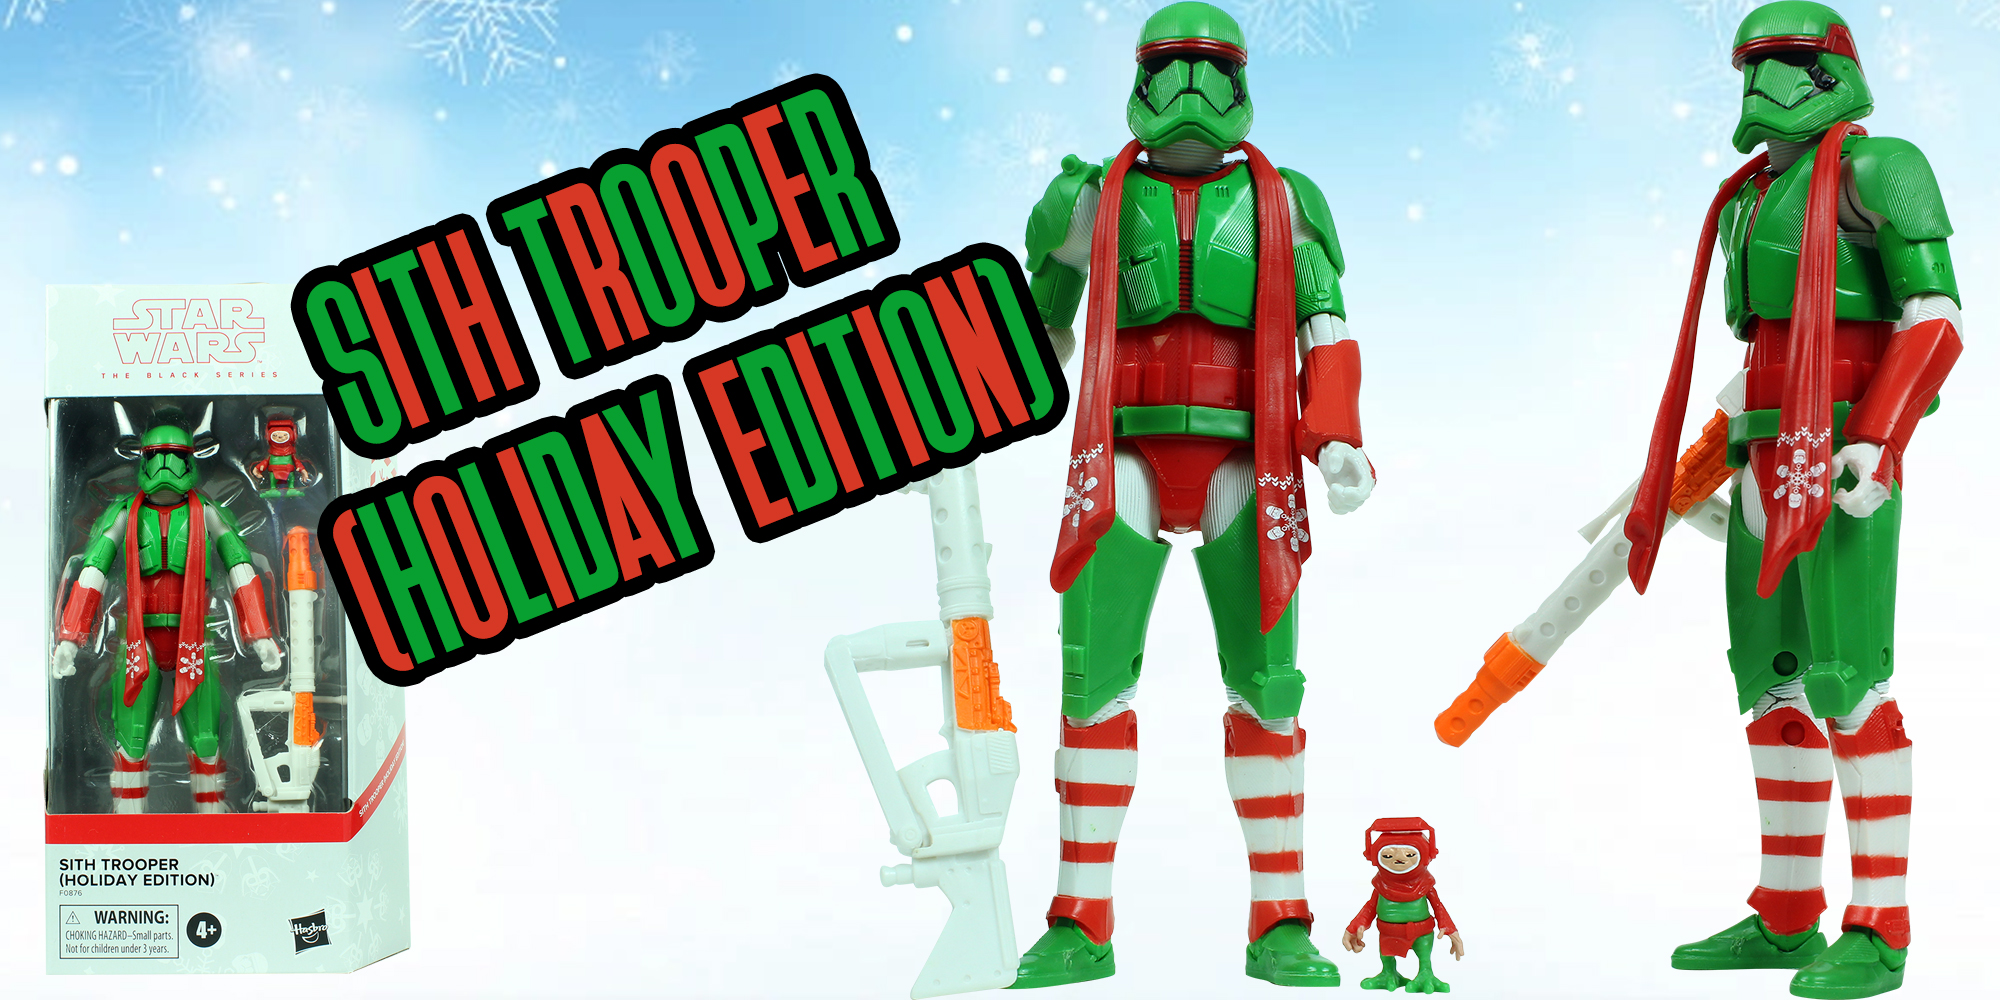 Black Series Sith Trooper Holiday